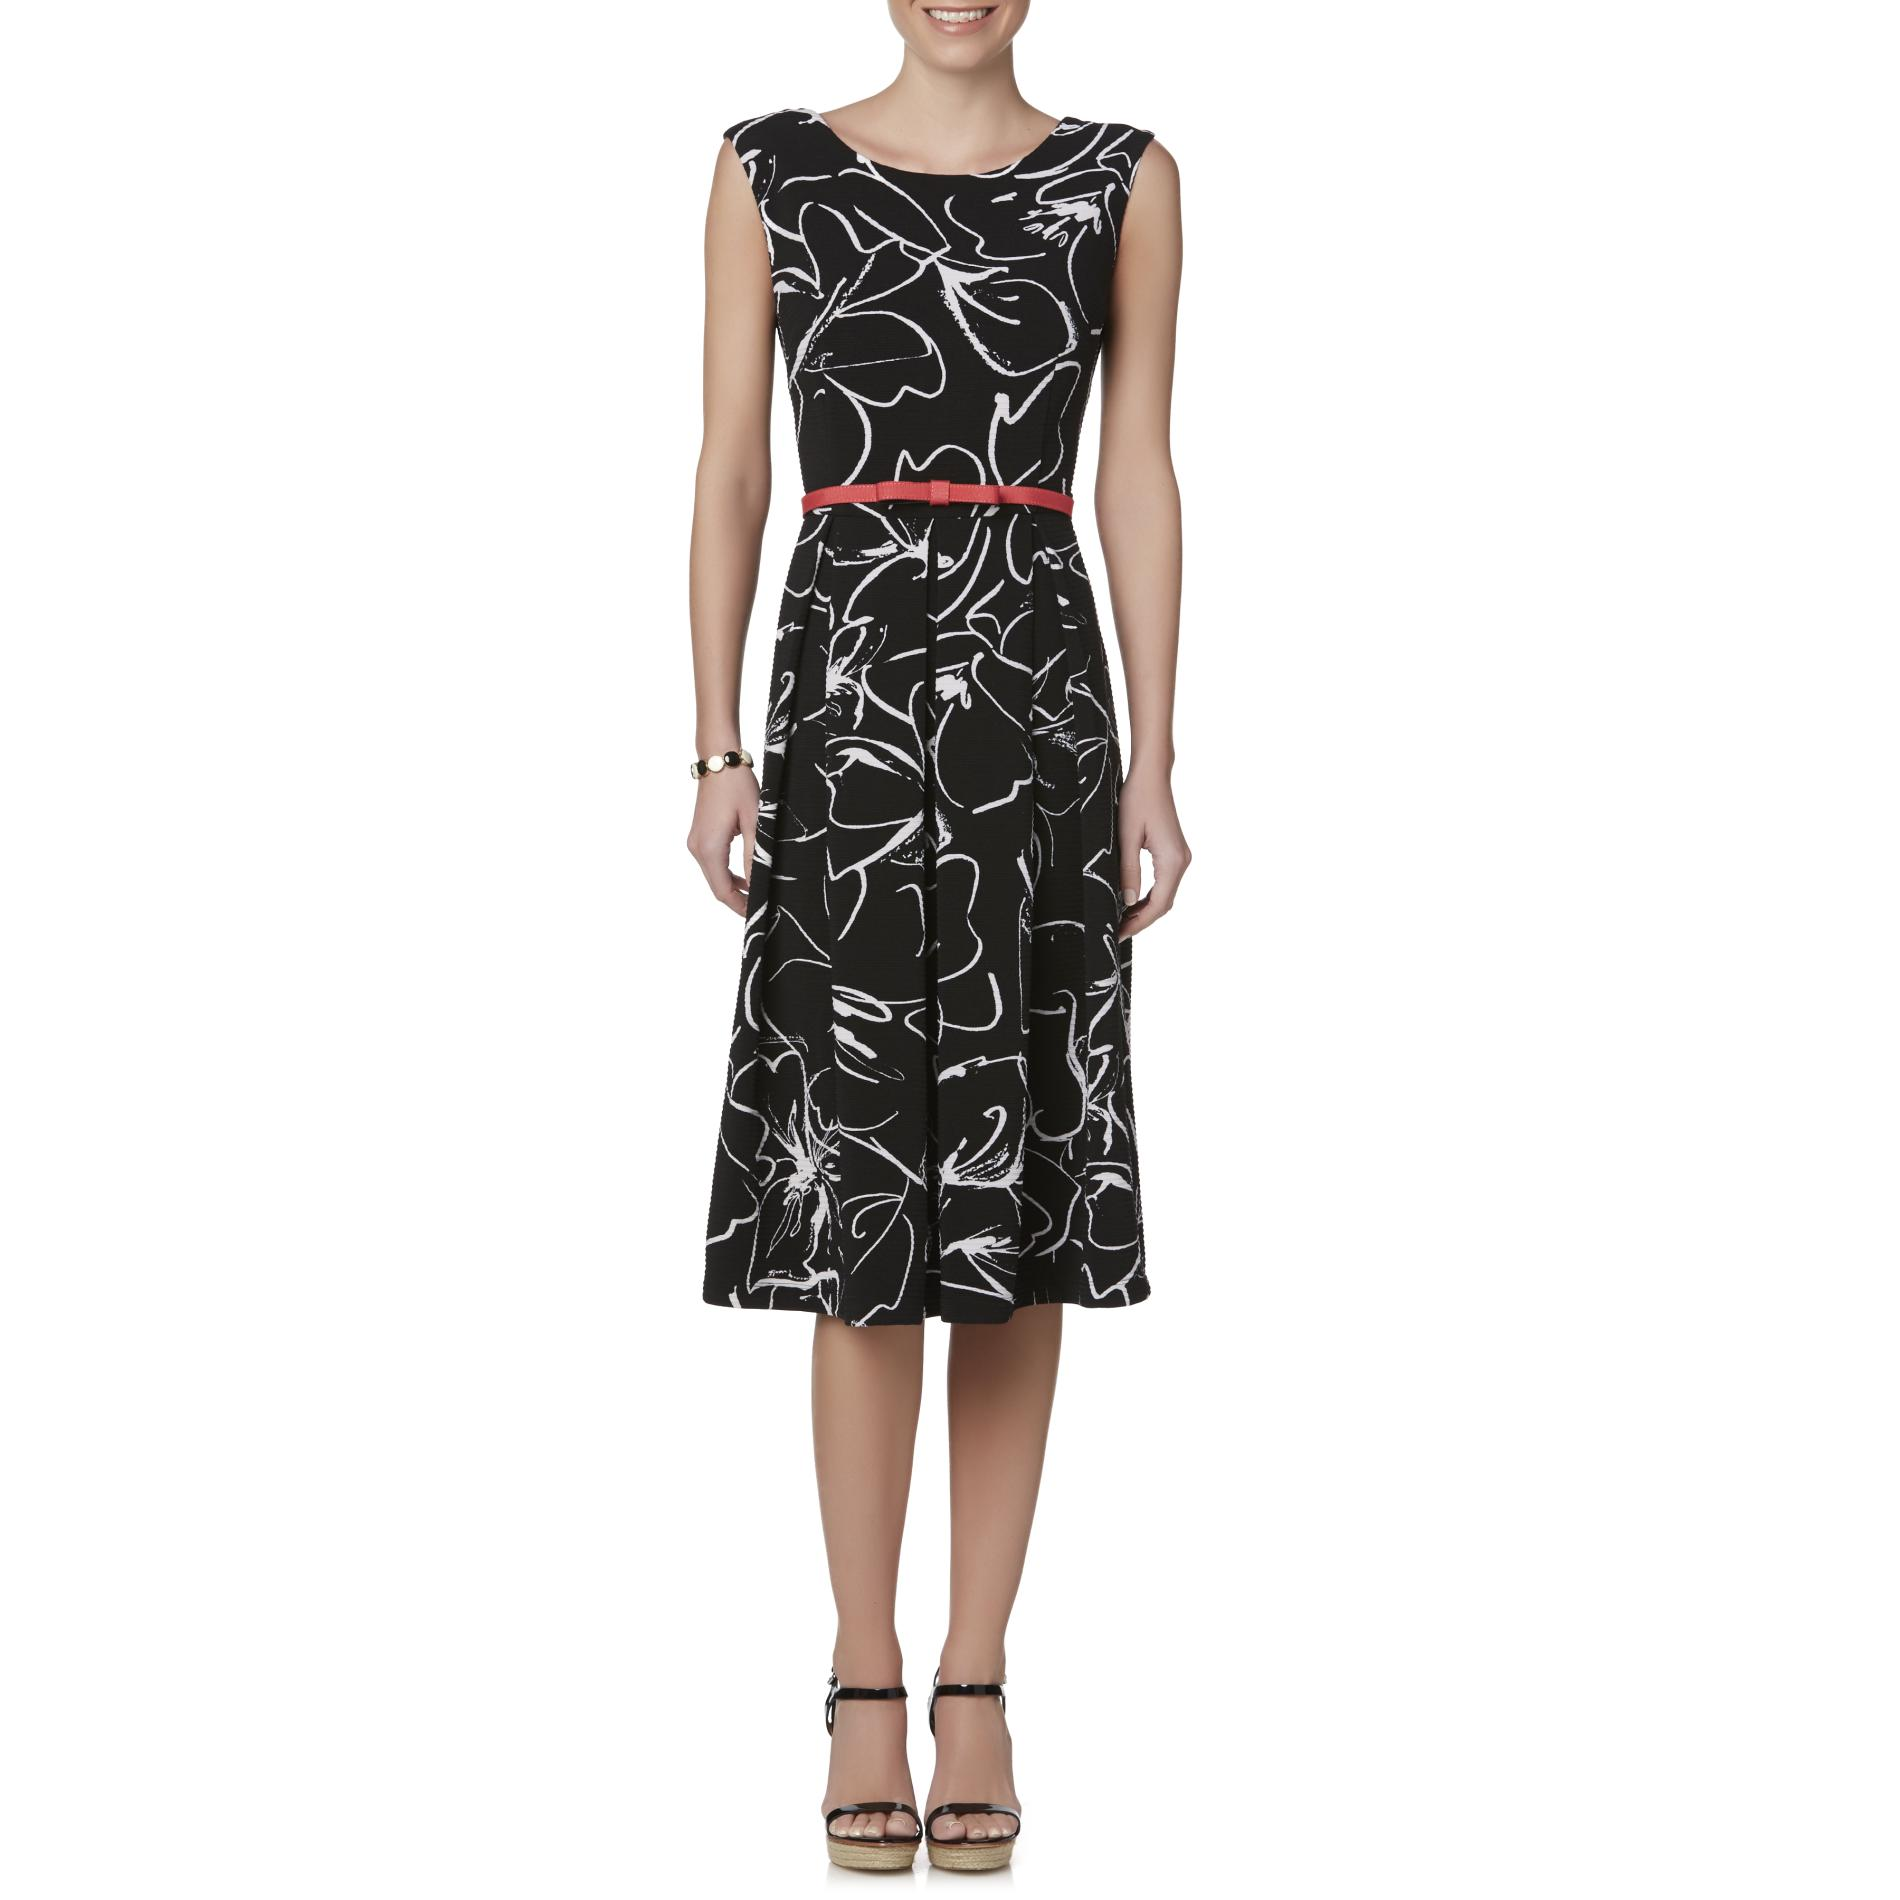 Julian Taylor Women's Belted Fit & Flare Dress - Abstract Print 031VA95120512P